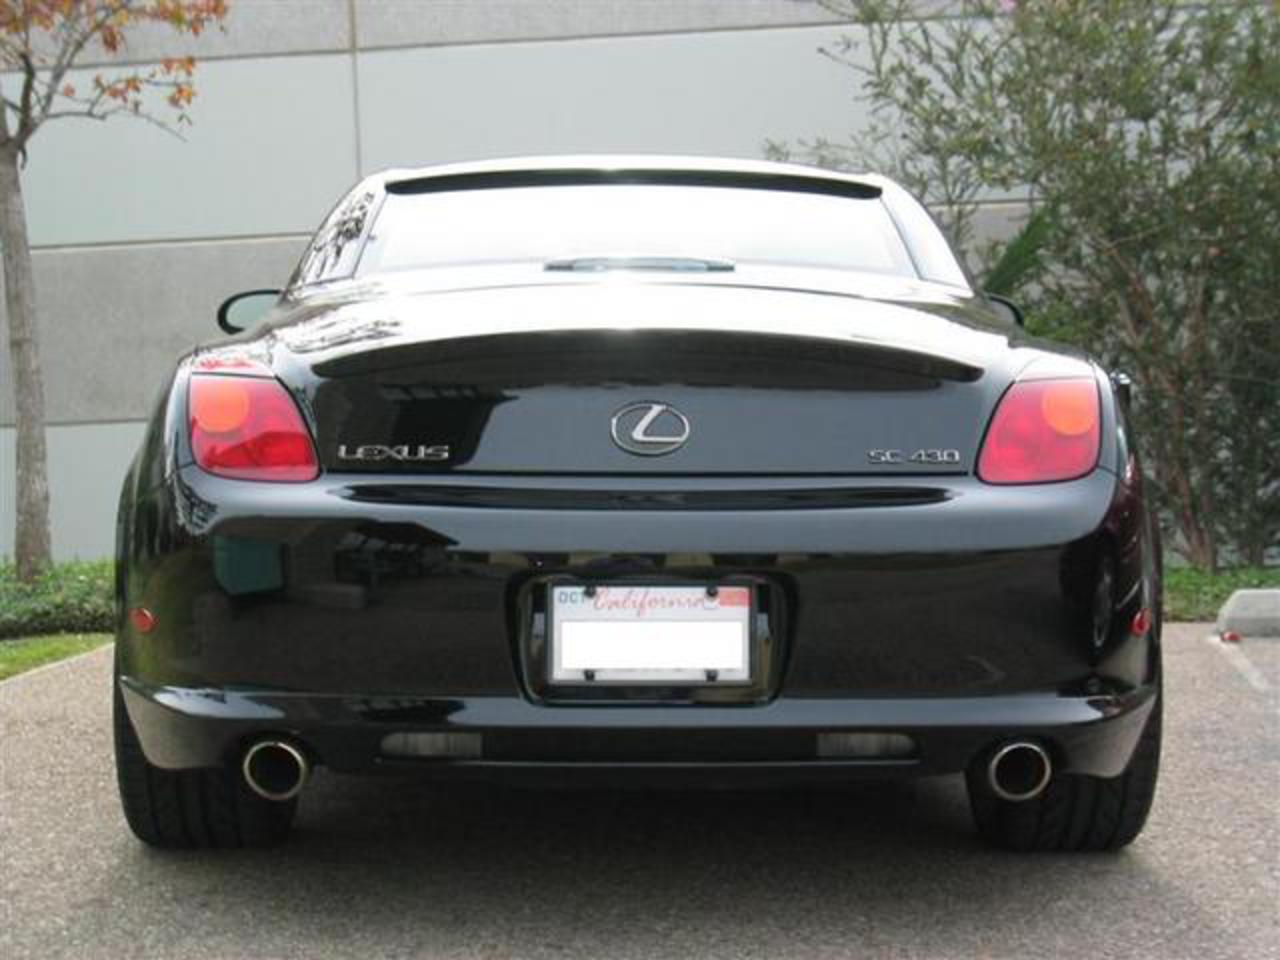 NEWEST BMW 635i Convertible copies back end of Lexus SC430!